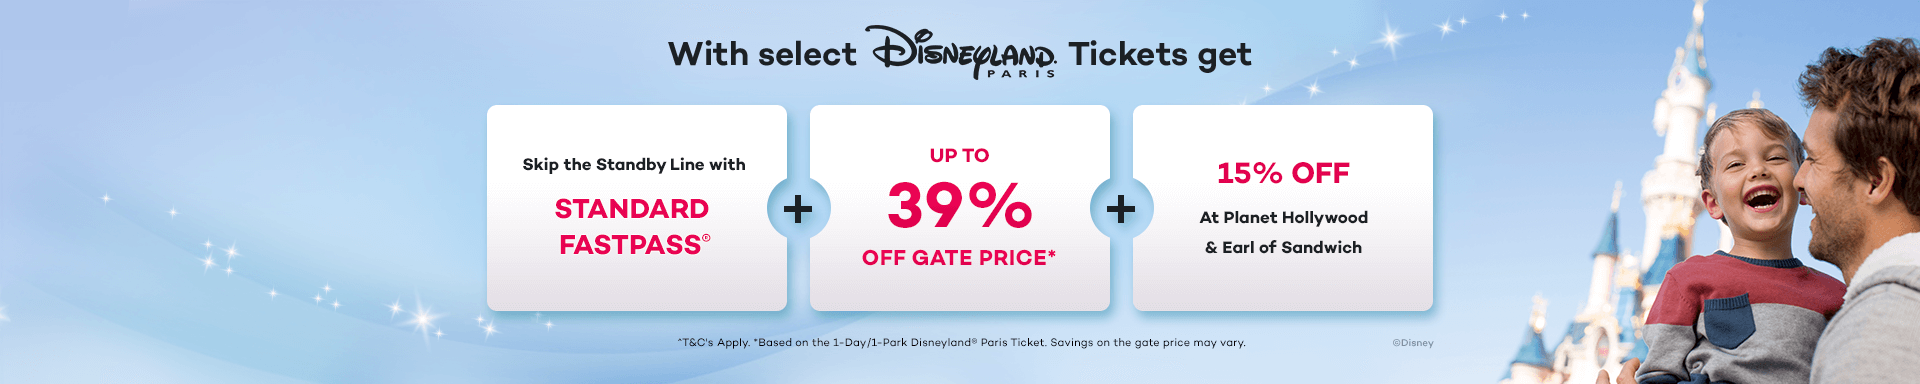 Save up to 39% Off the Gate Price at Disneyland Paris